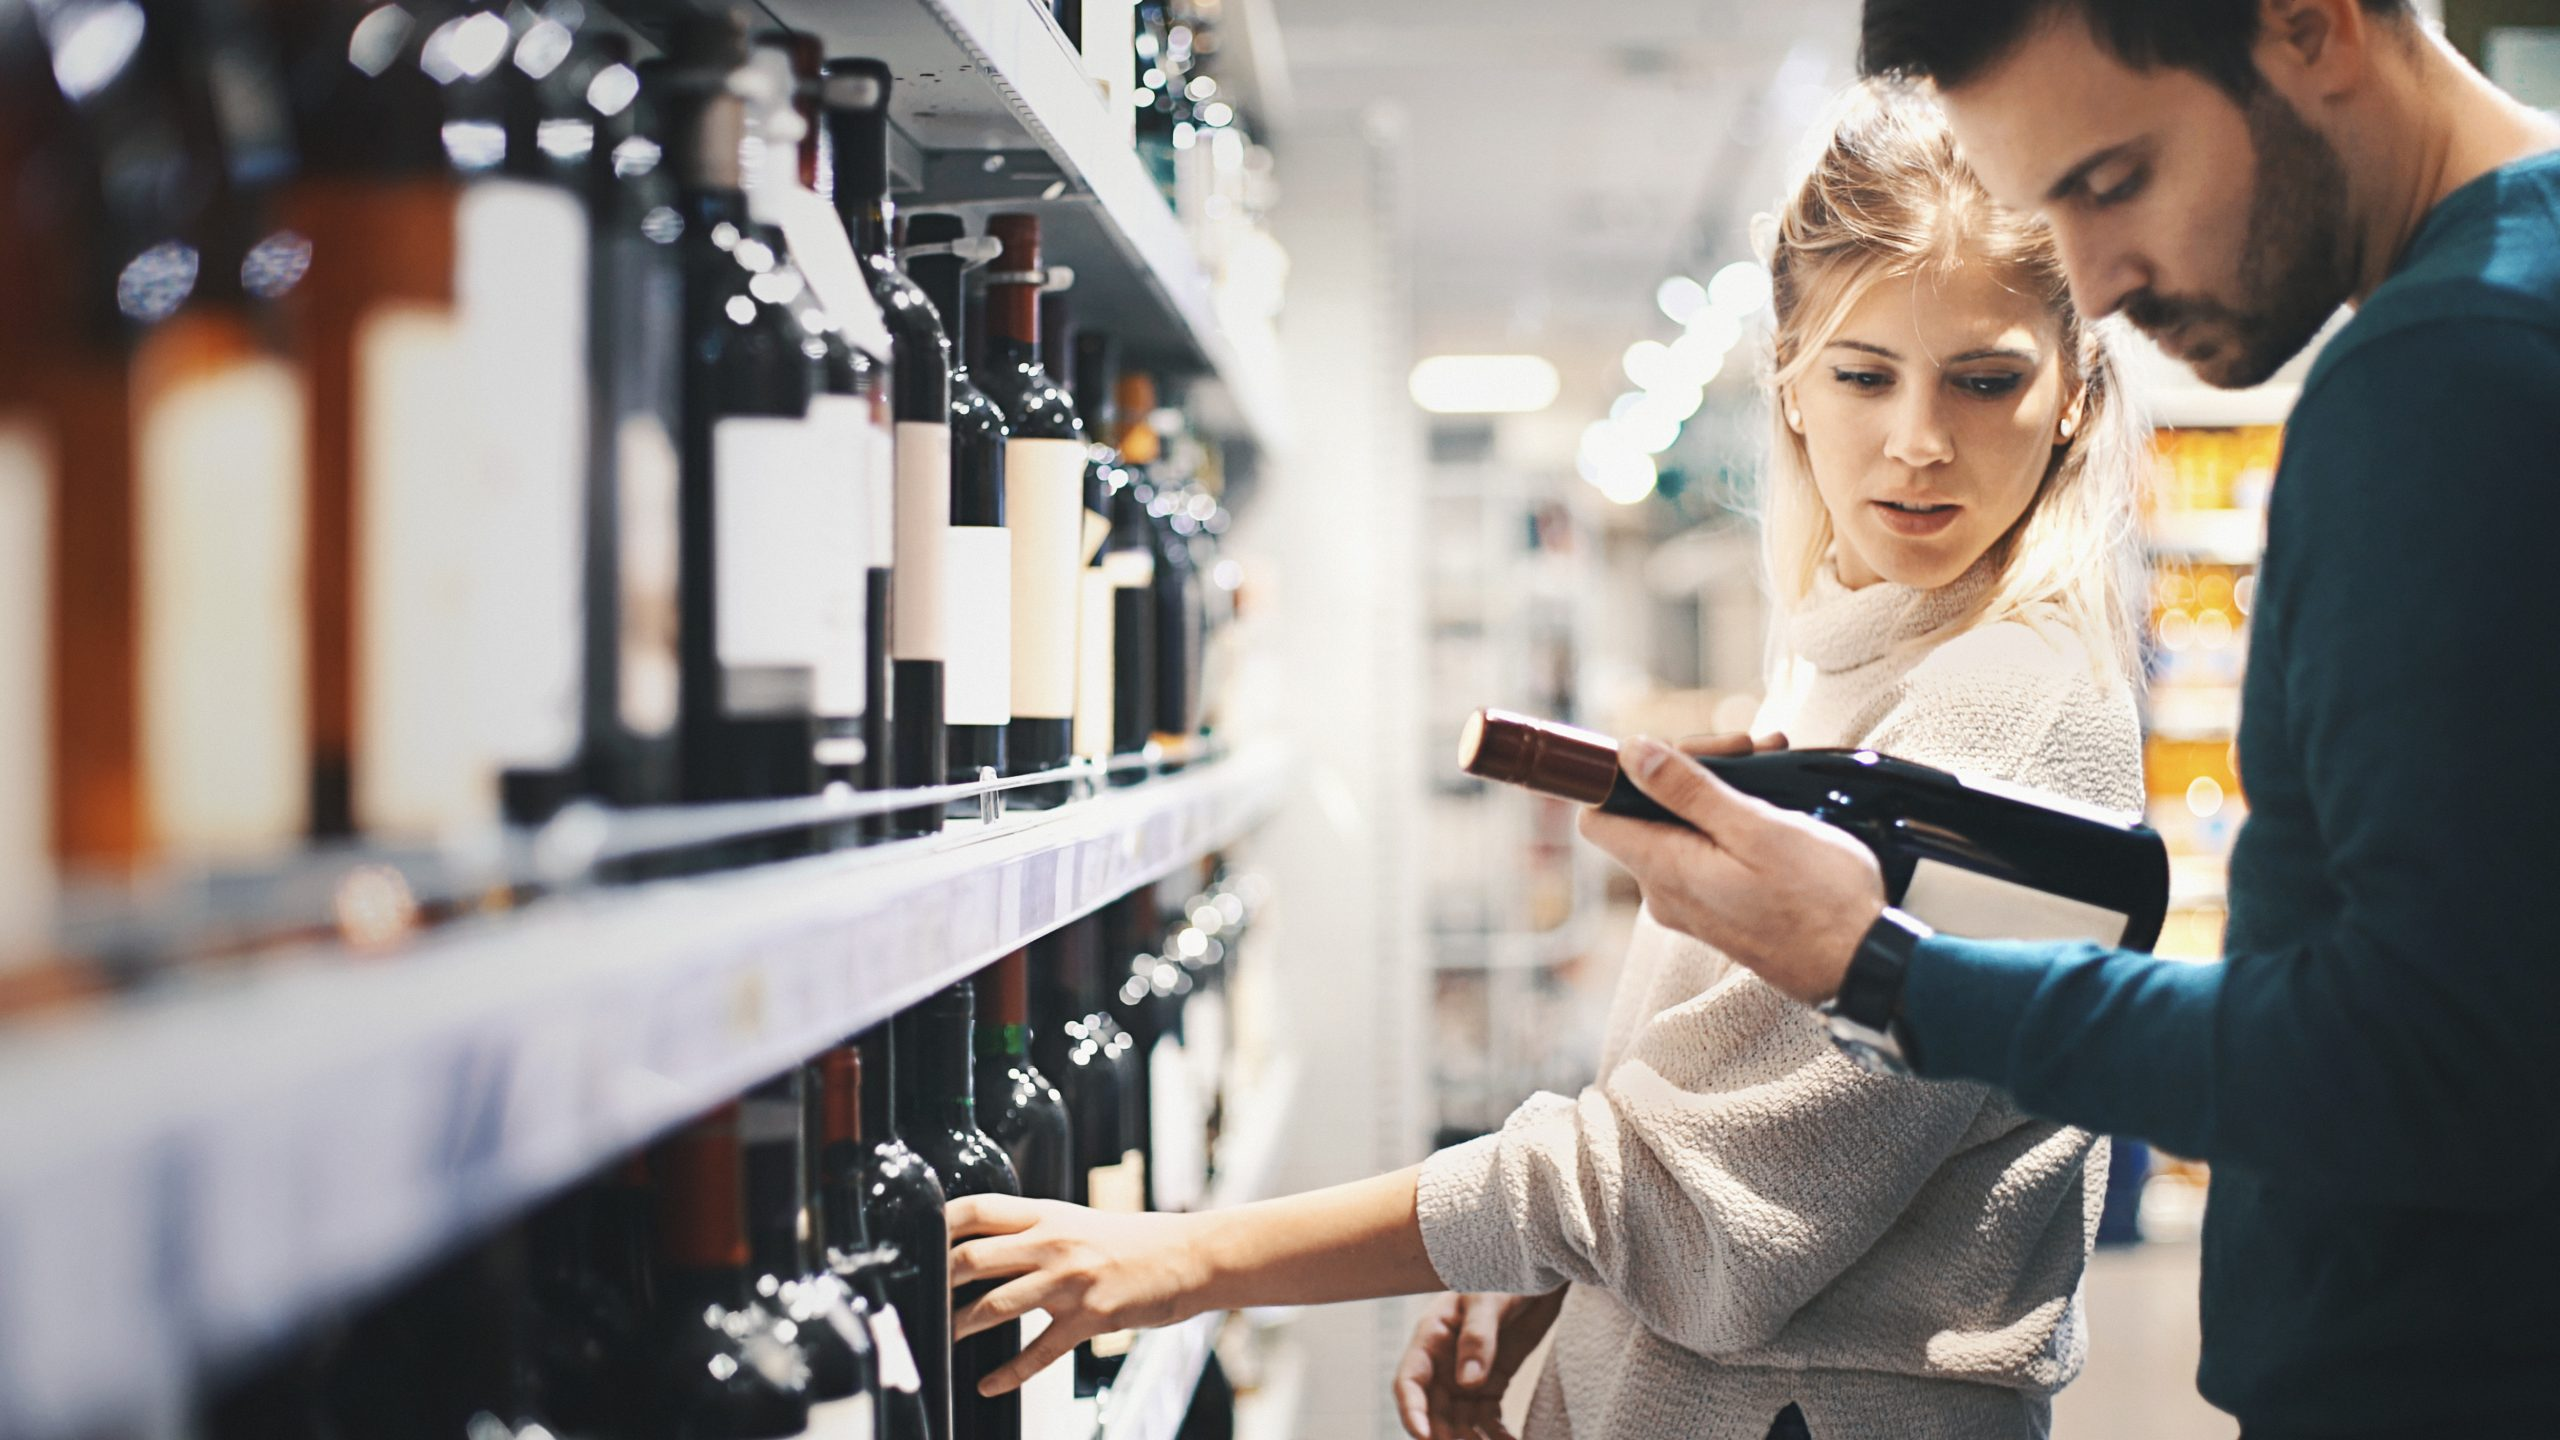 Couple buying some wine at a supermarket: Port brand Sogrape joins experimental electronic labelling project